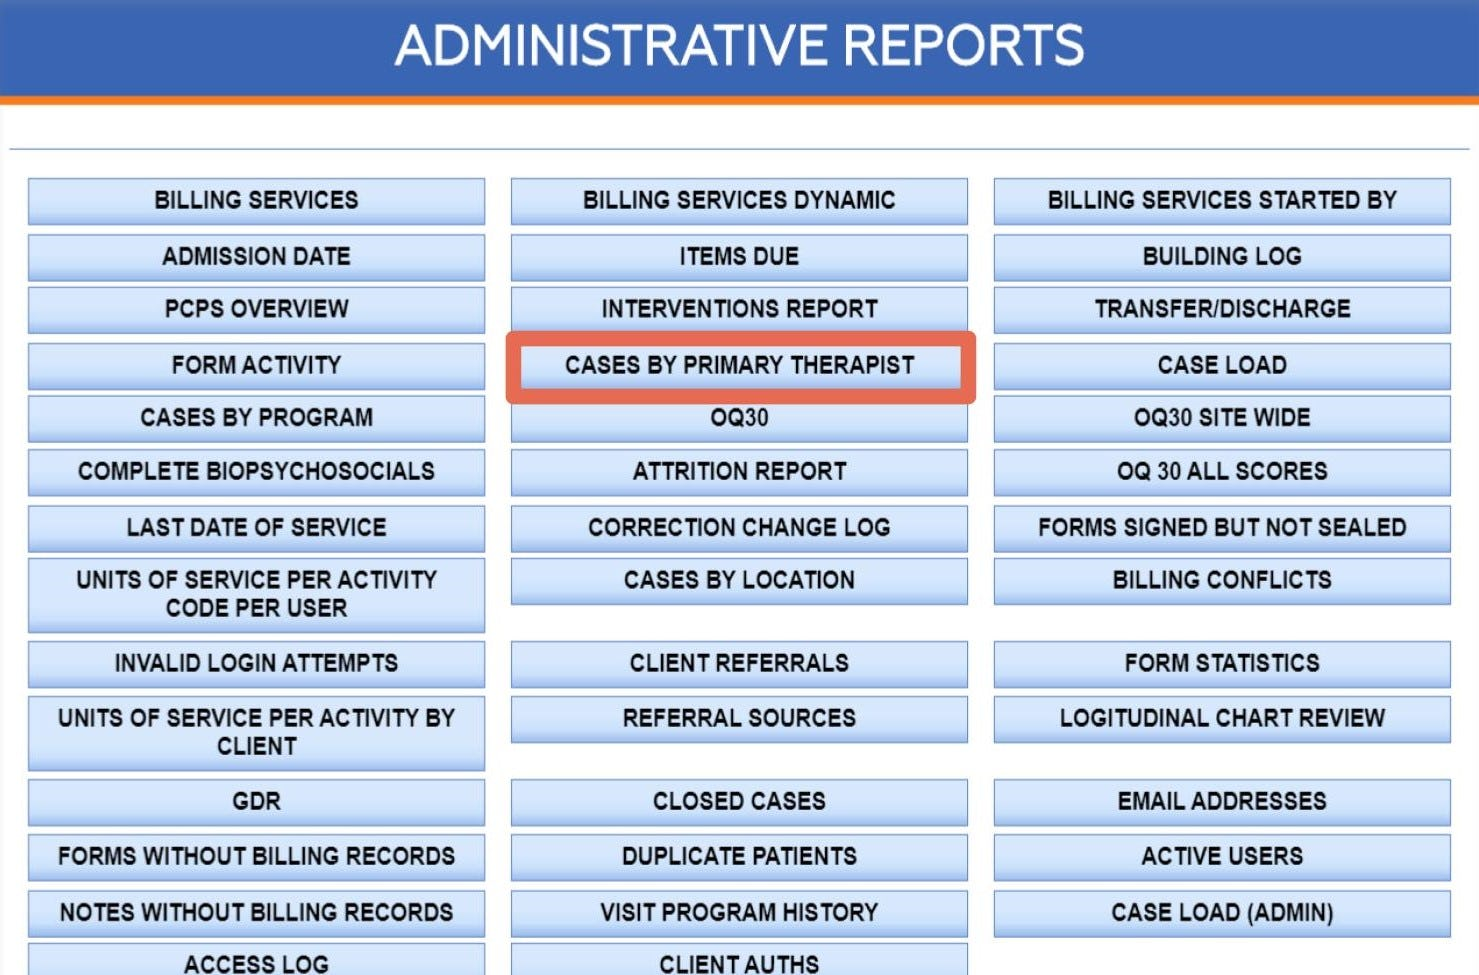 NextStep Software - Administrative Reports